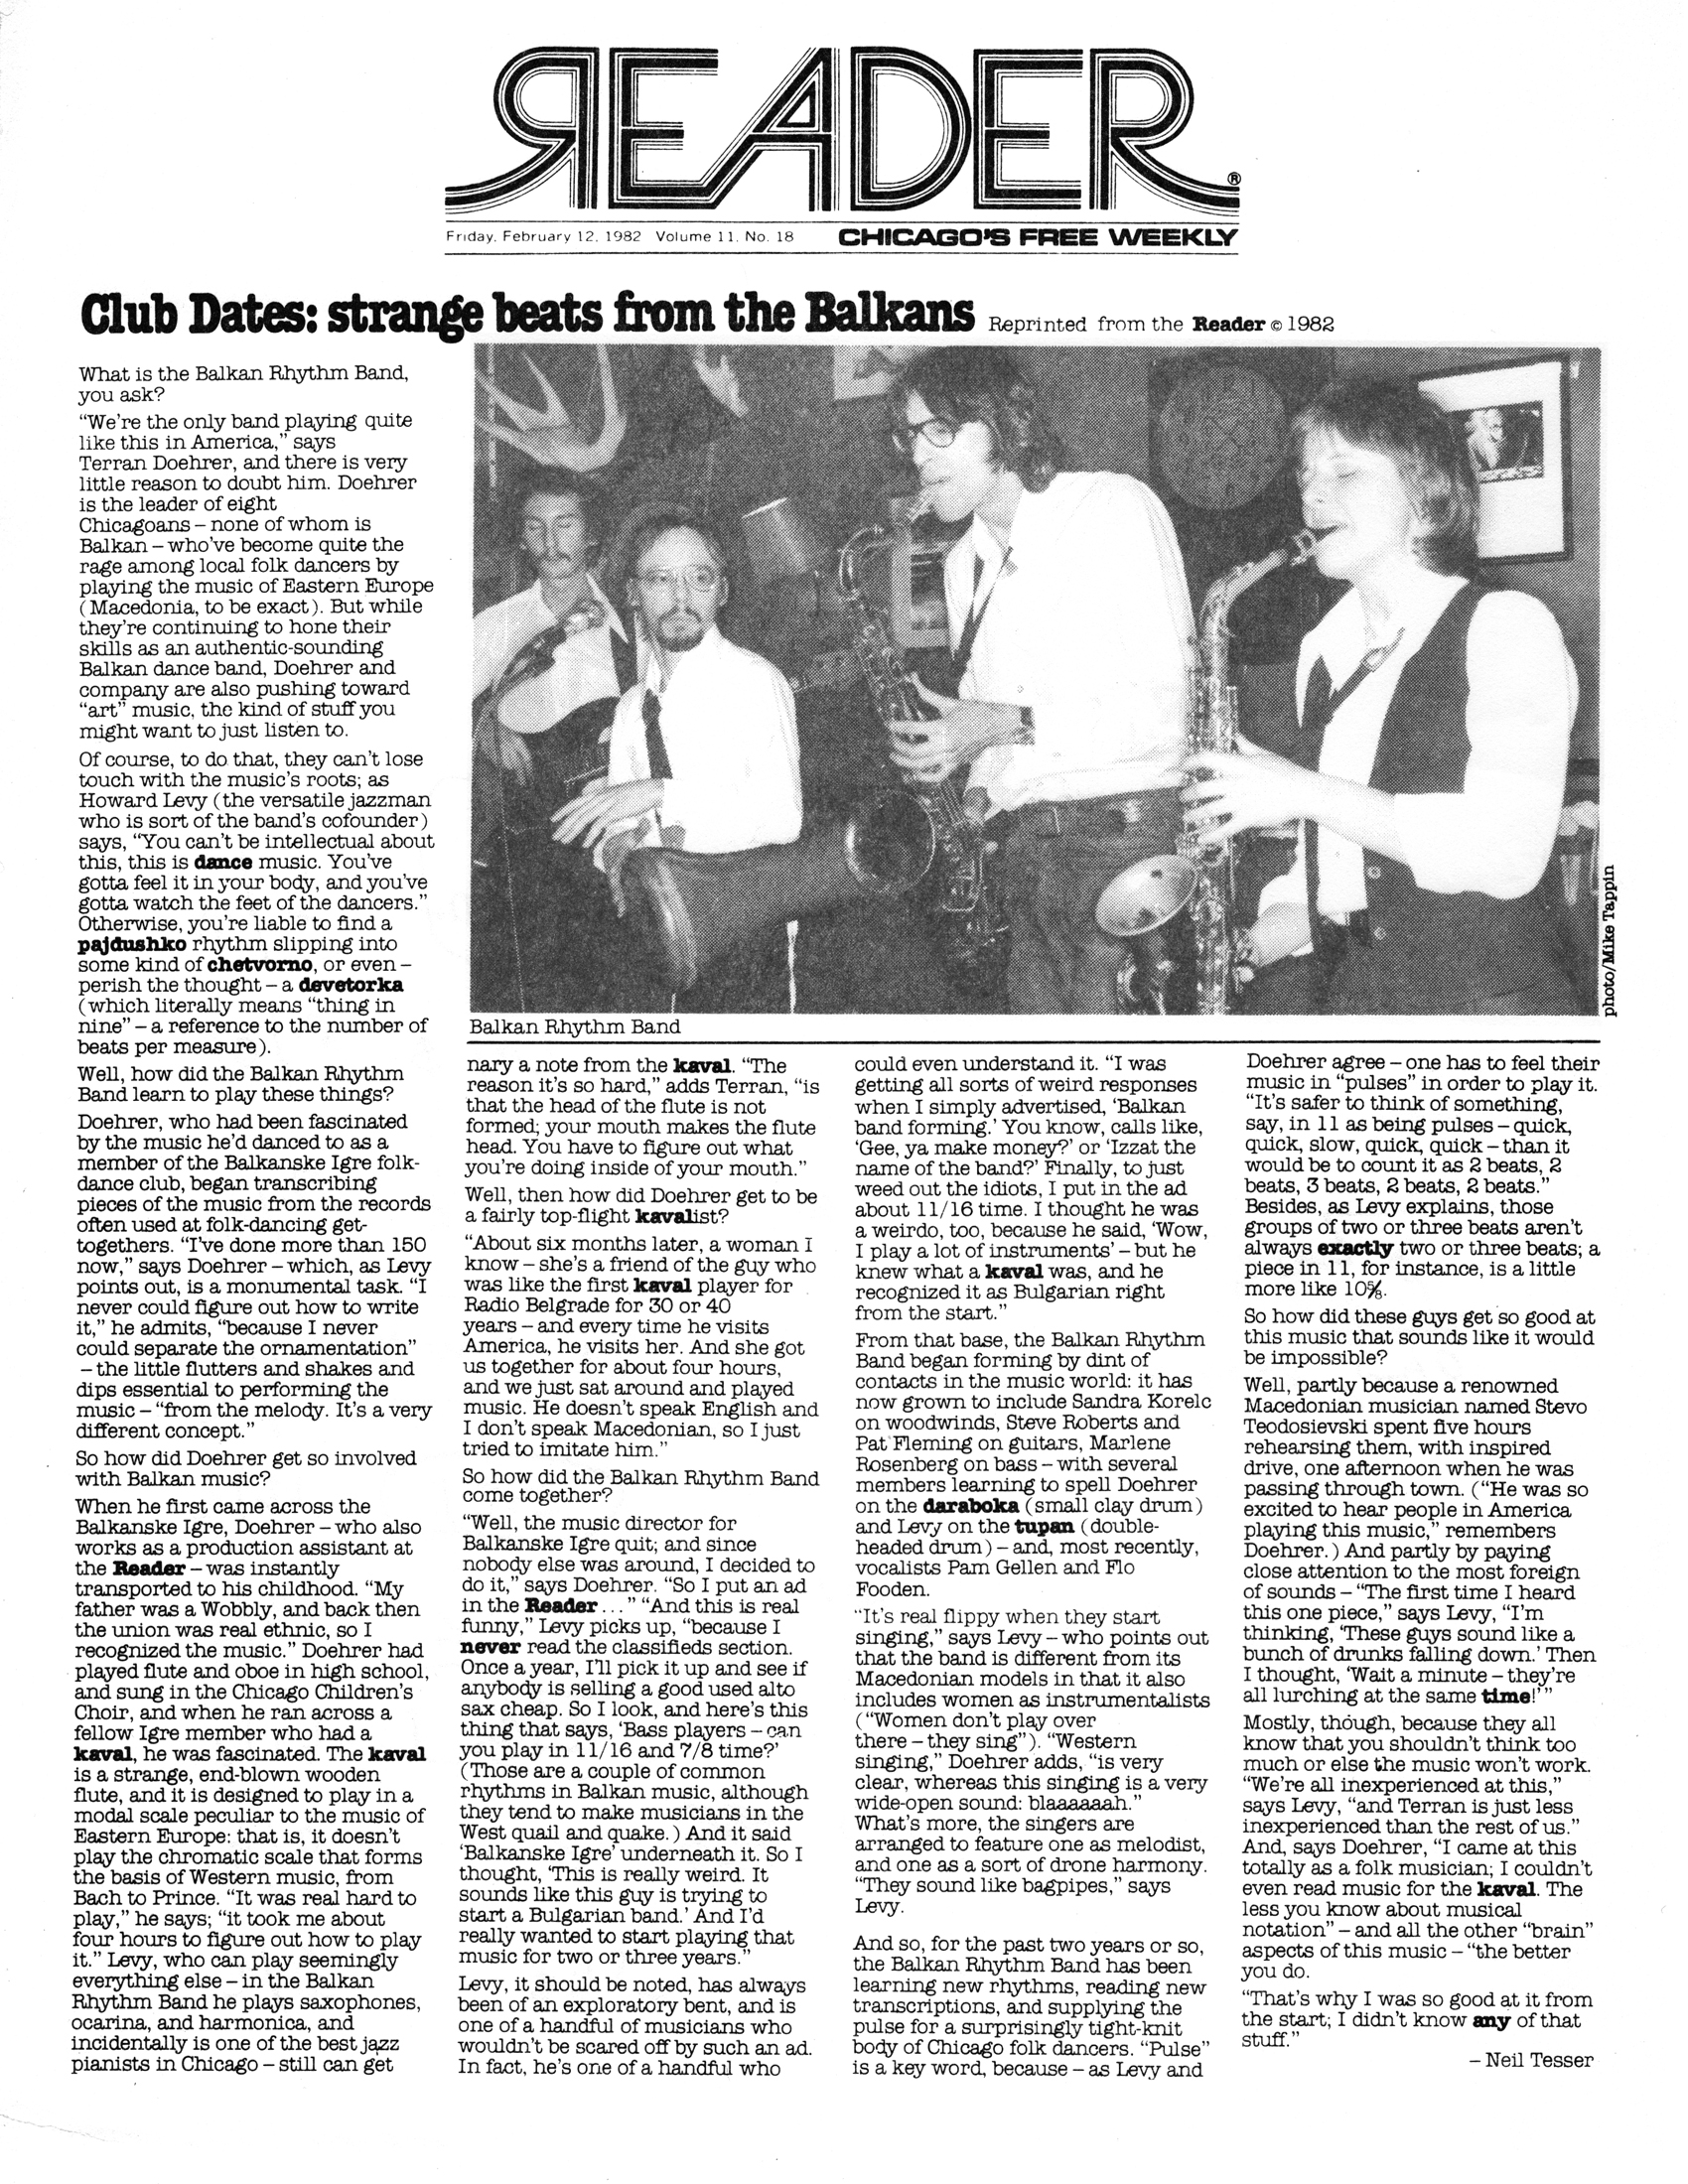 Chicago Reader newspaper February 12, 1982 clipping about the Balkan Rhythm Band (tm)